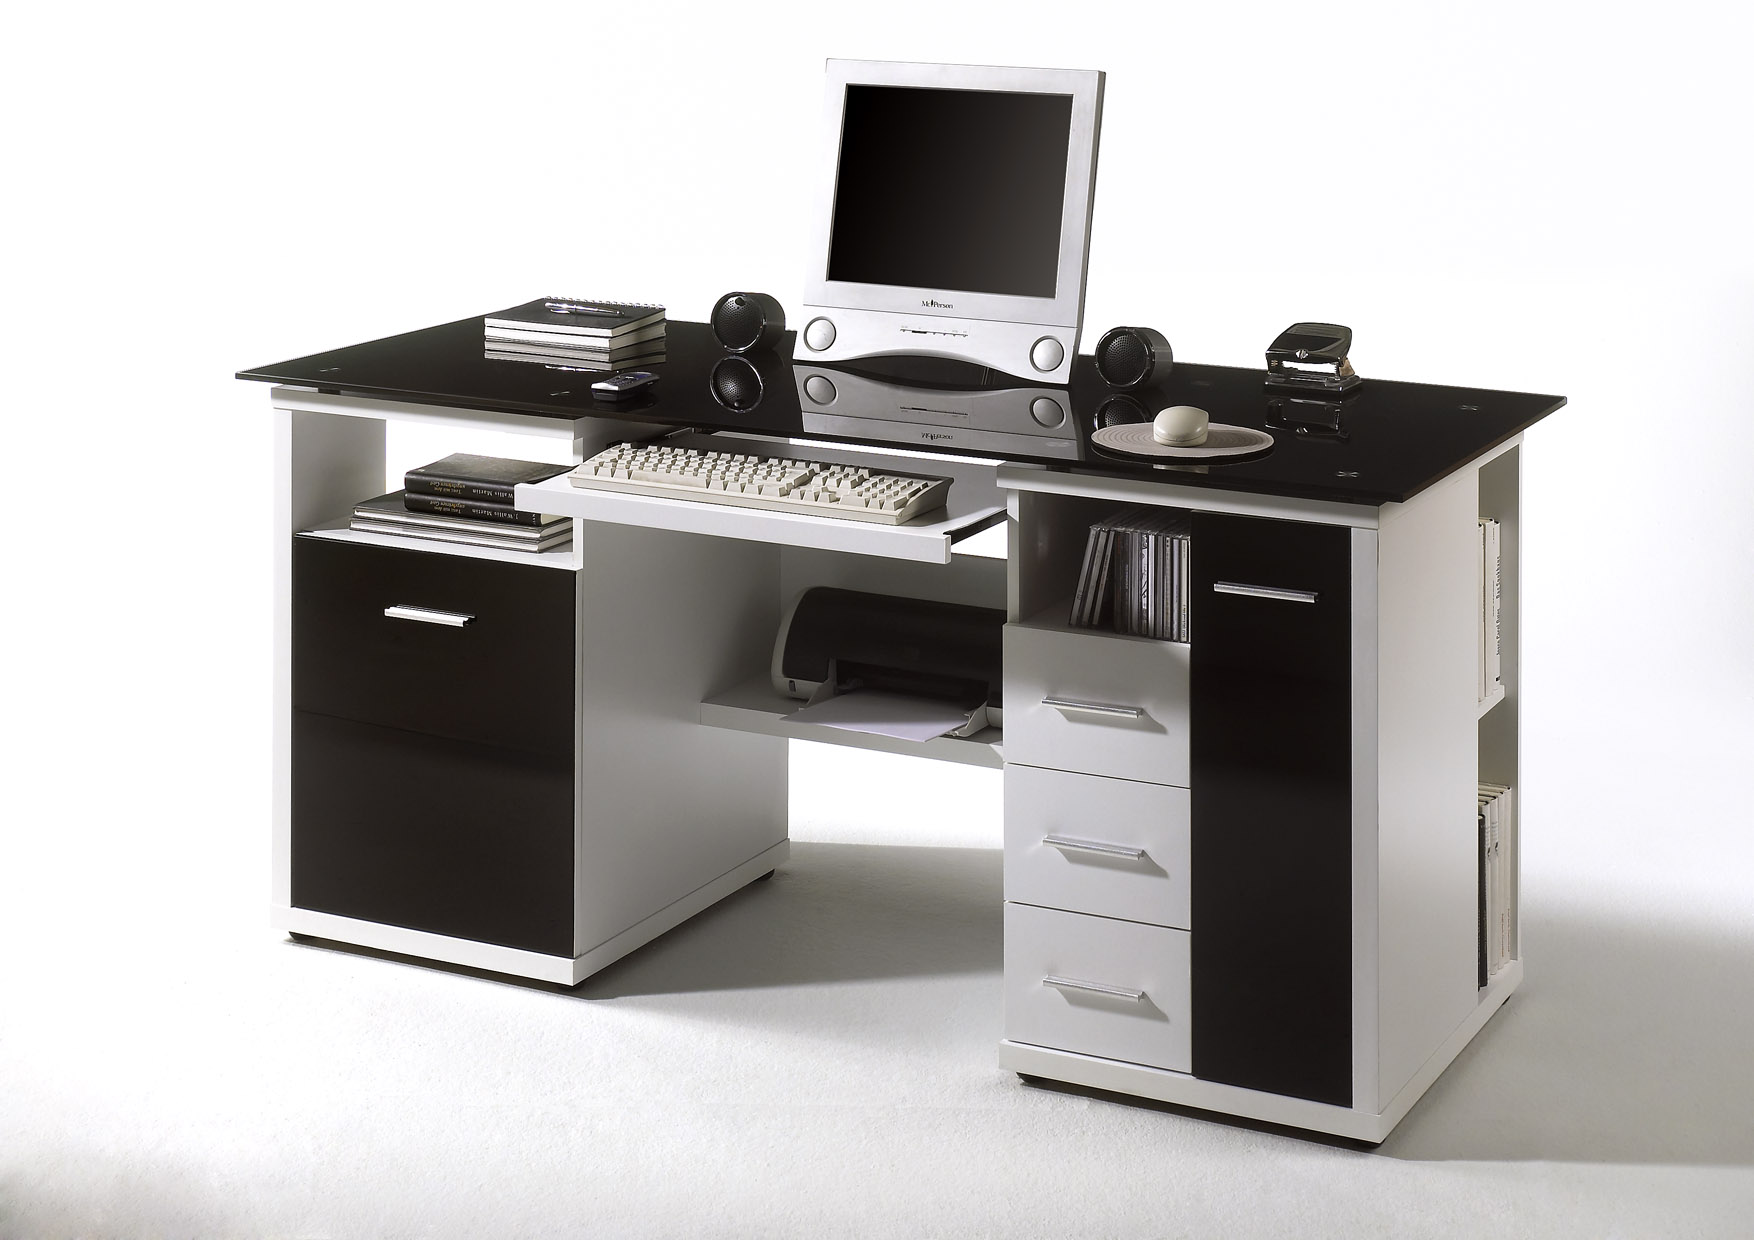 schreibtisch home office weiss glas schwarz ebay. Black Bedroom Furniture Sets. Home Design Ideas